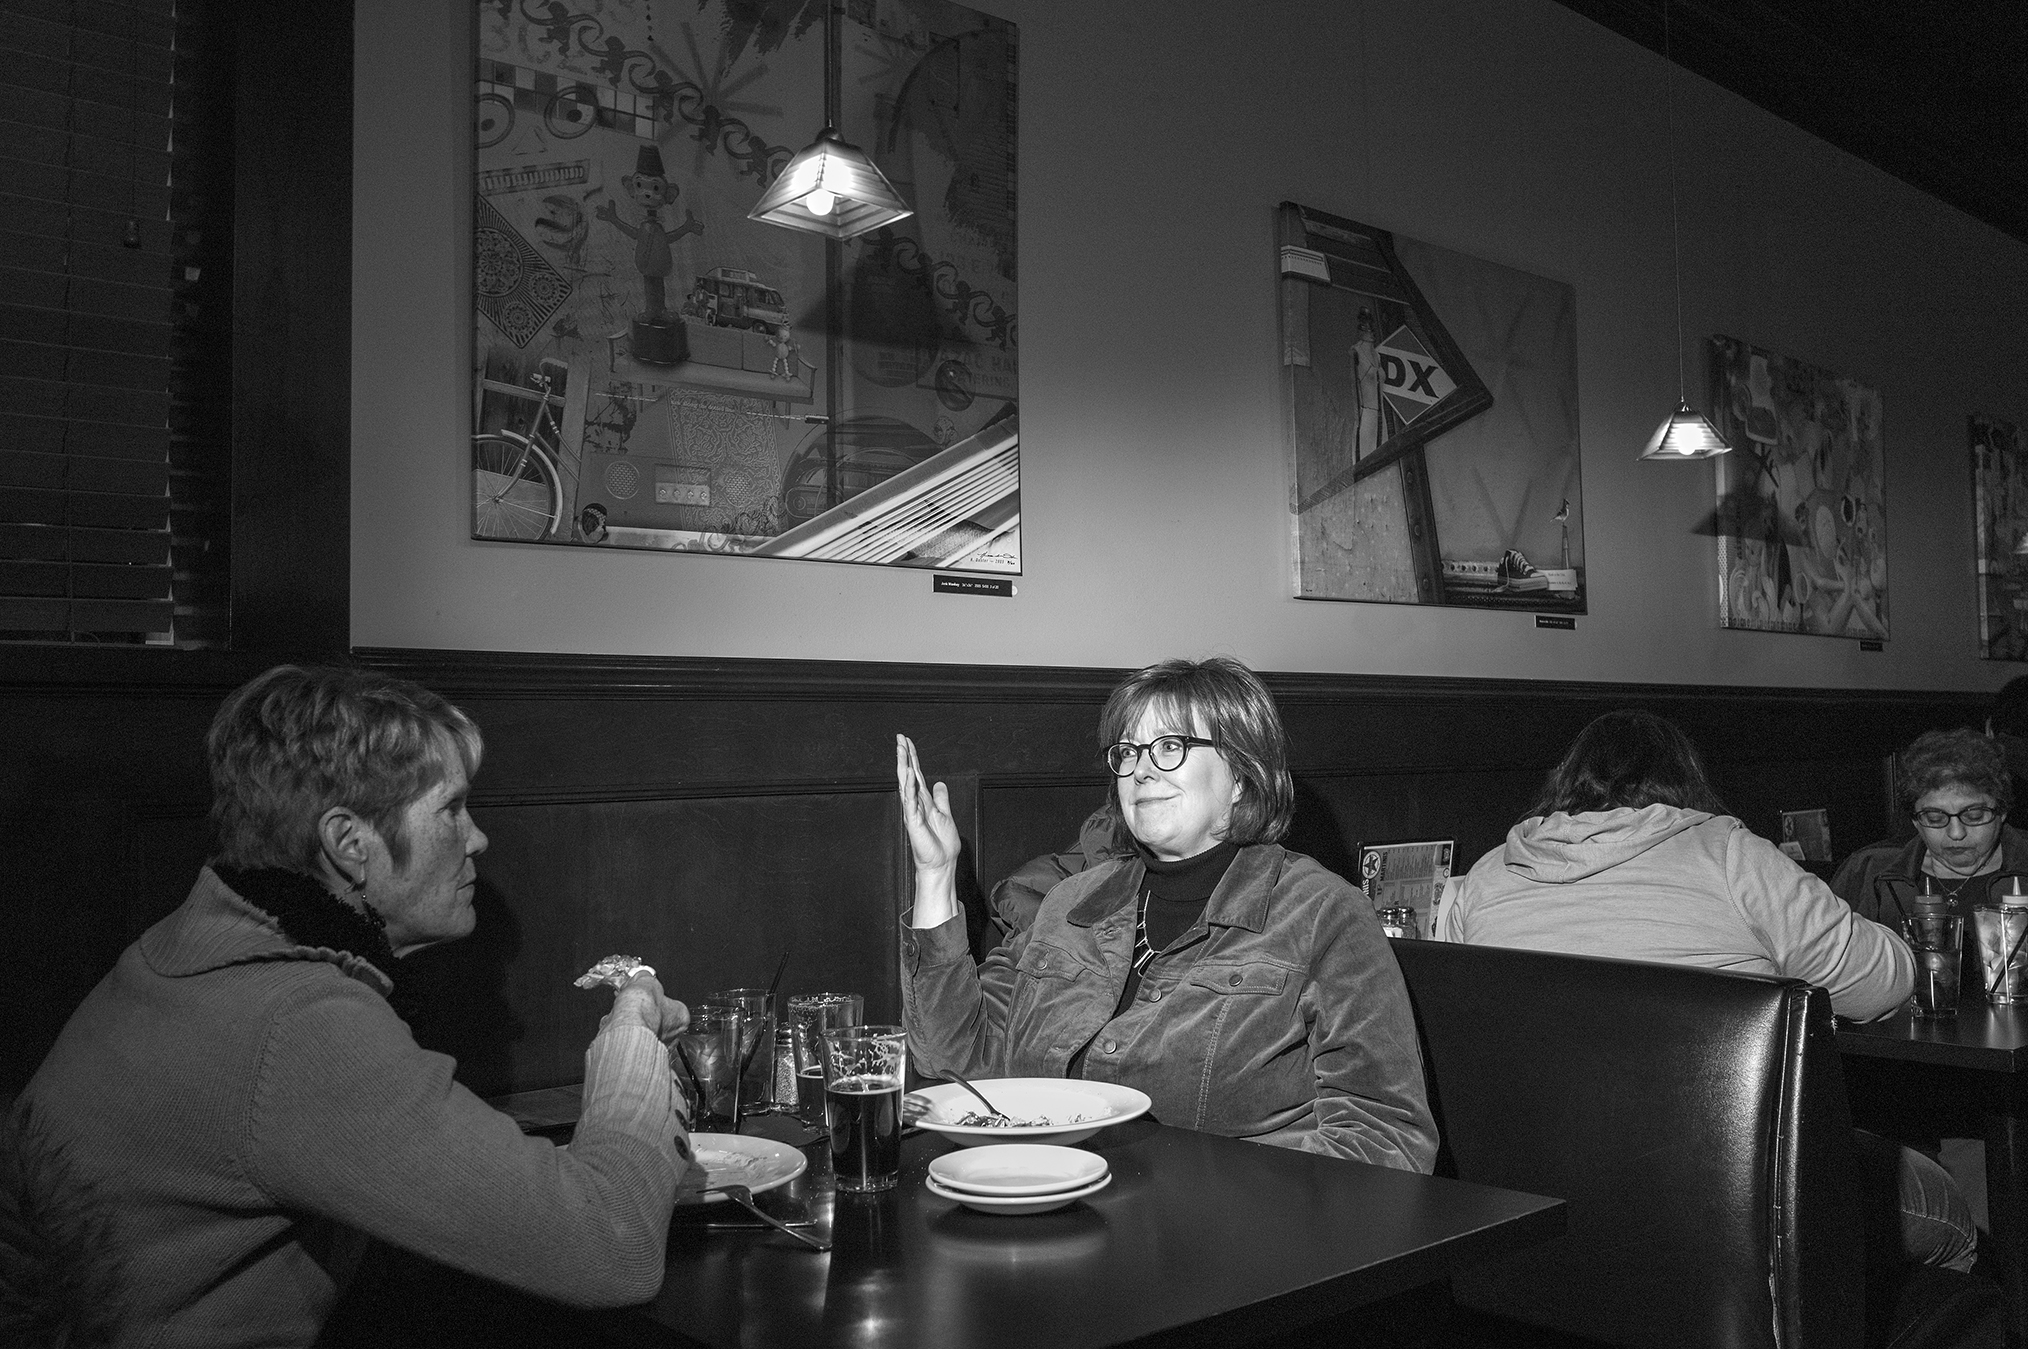 Selzer dines with a friend at the Star Bar in Des Moines on Jan. 17.